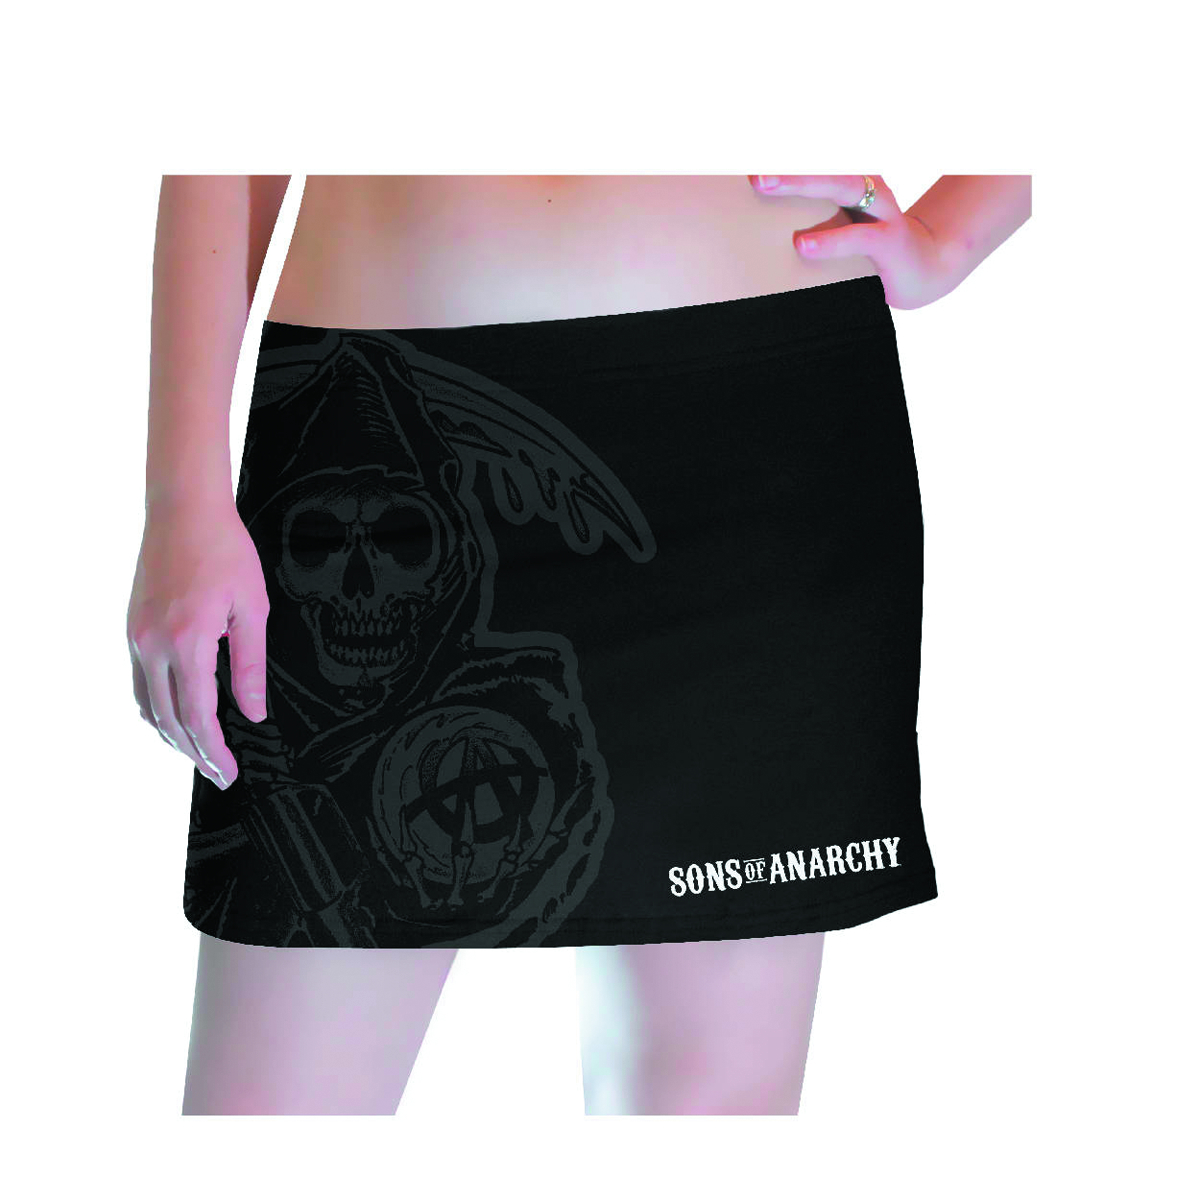 SONS OF ANARCHY REAPER SKIRT SM